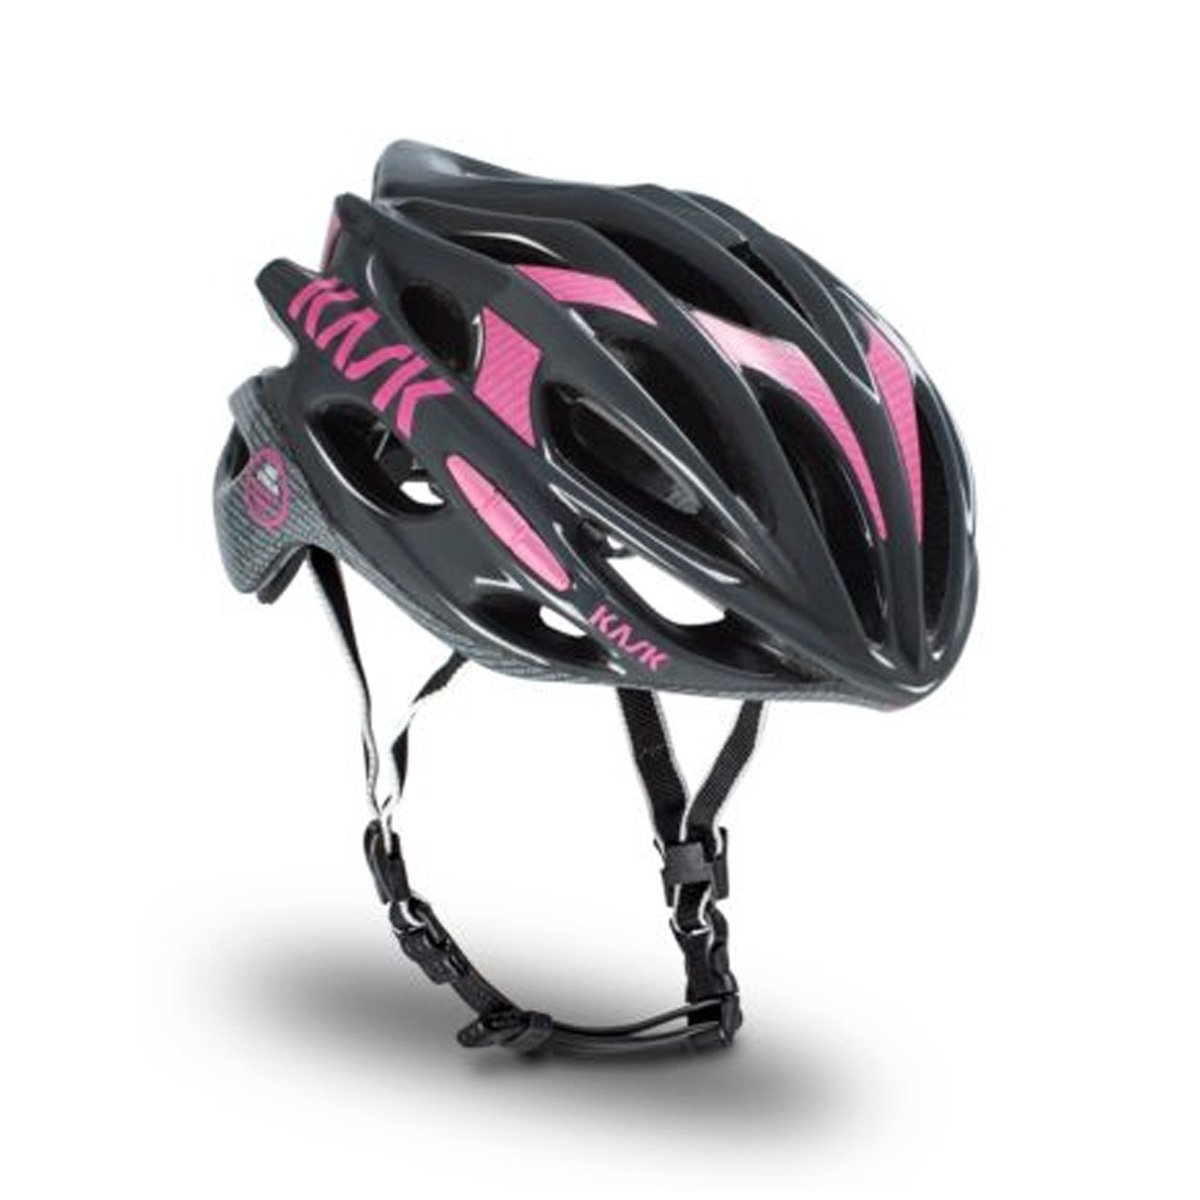 Pink Kask Bicycle Helmets